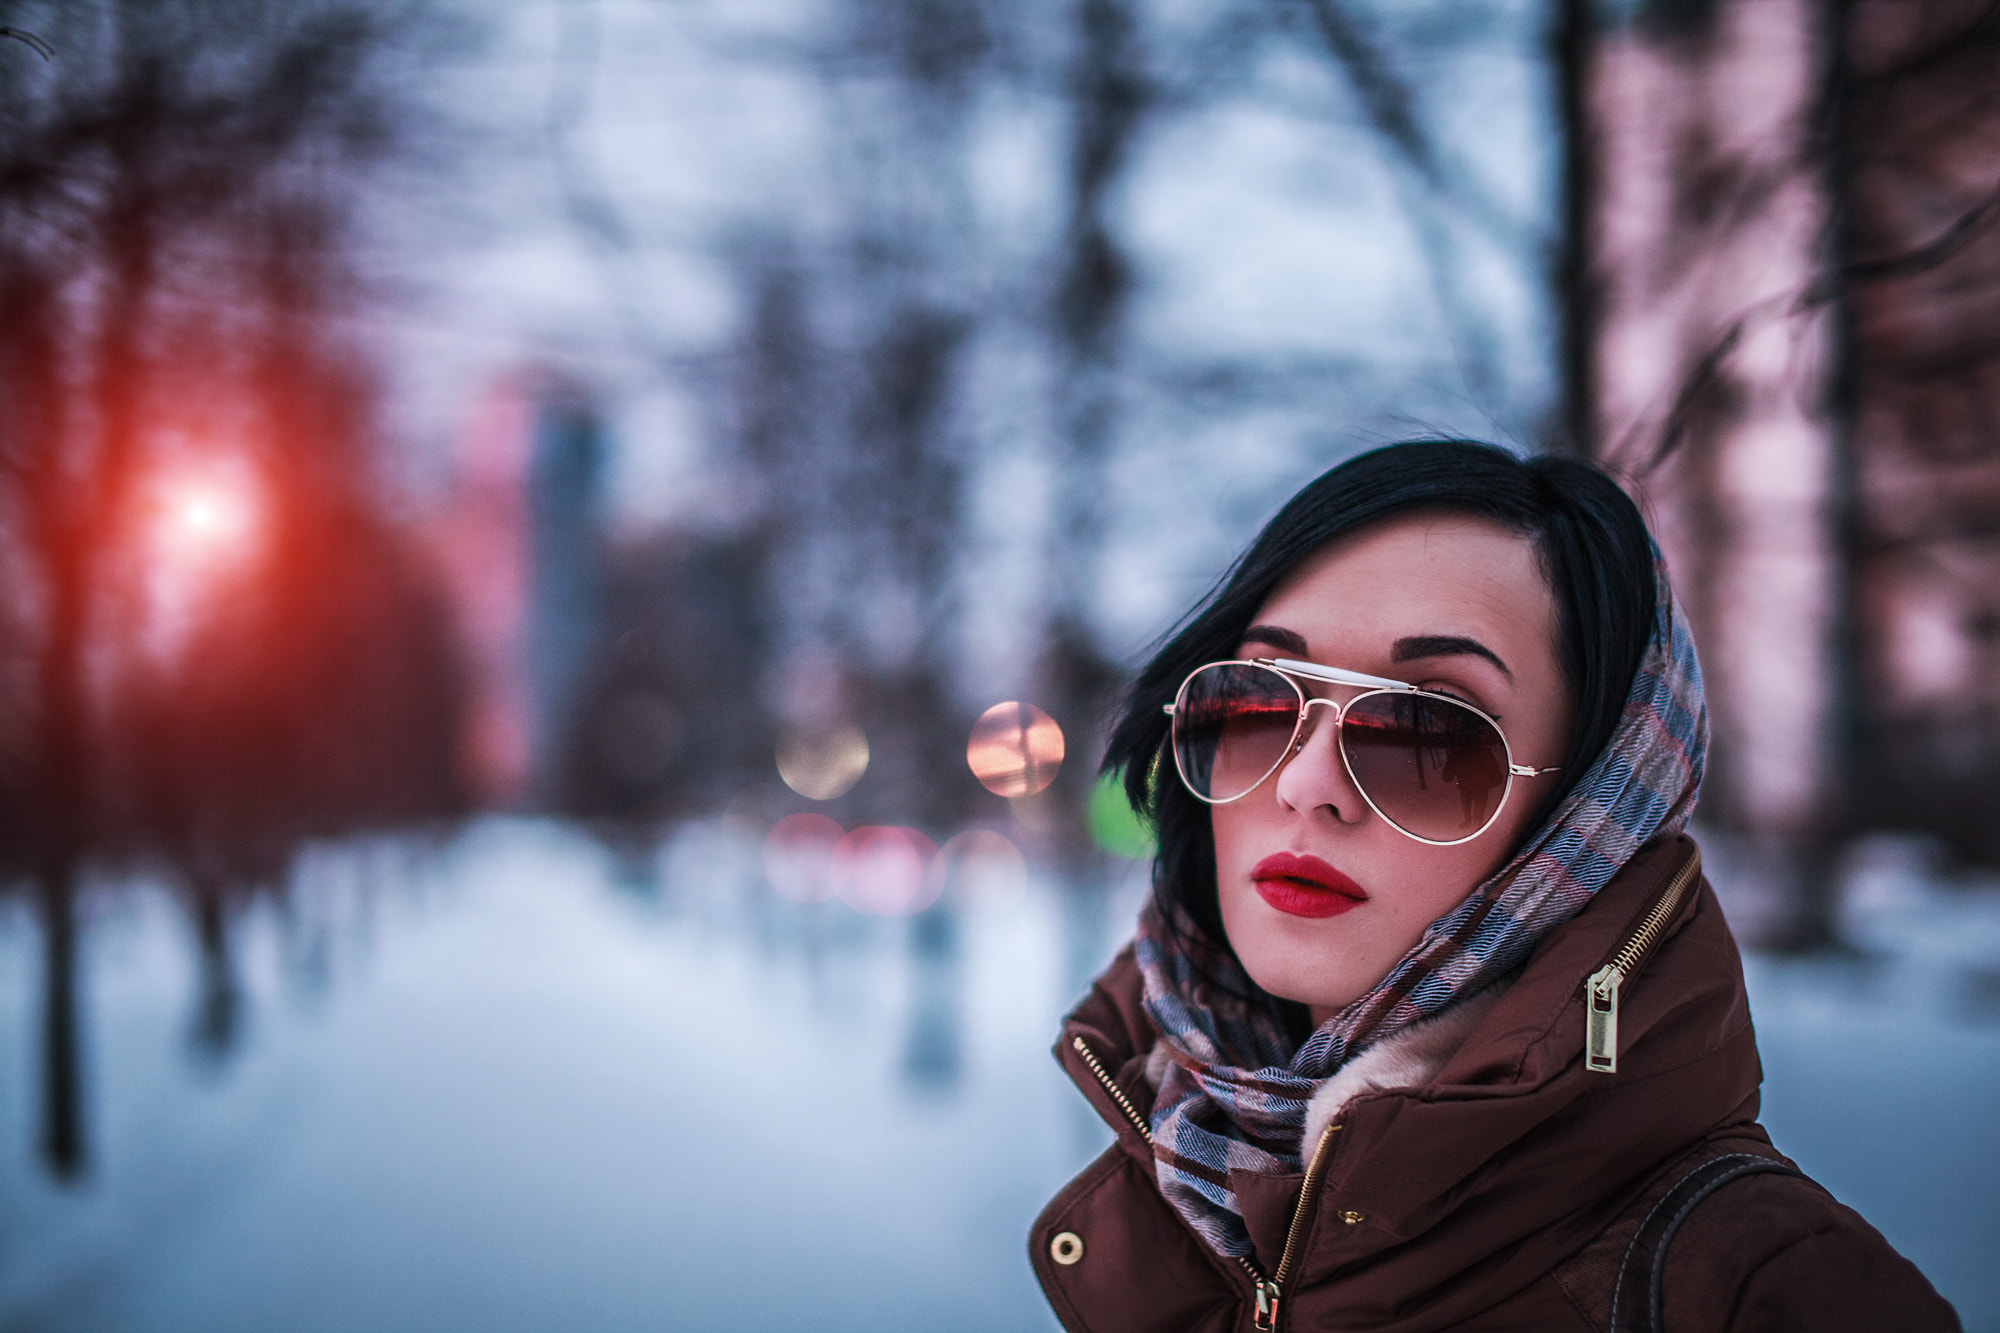 Photograph Untitled by Andrey Mikhailov on 500px